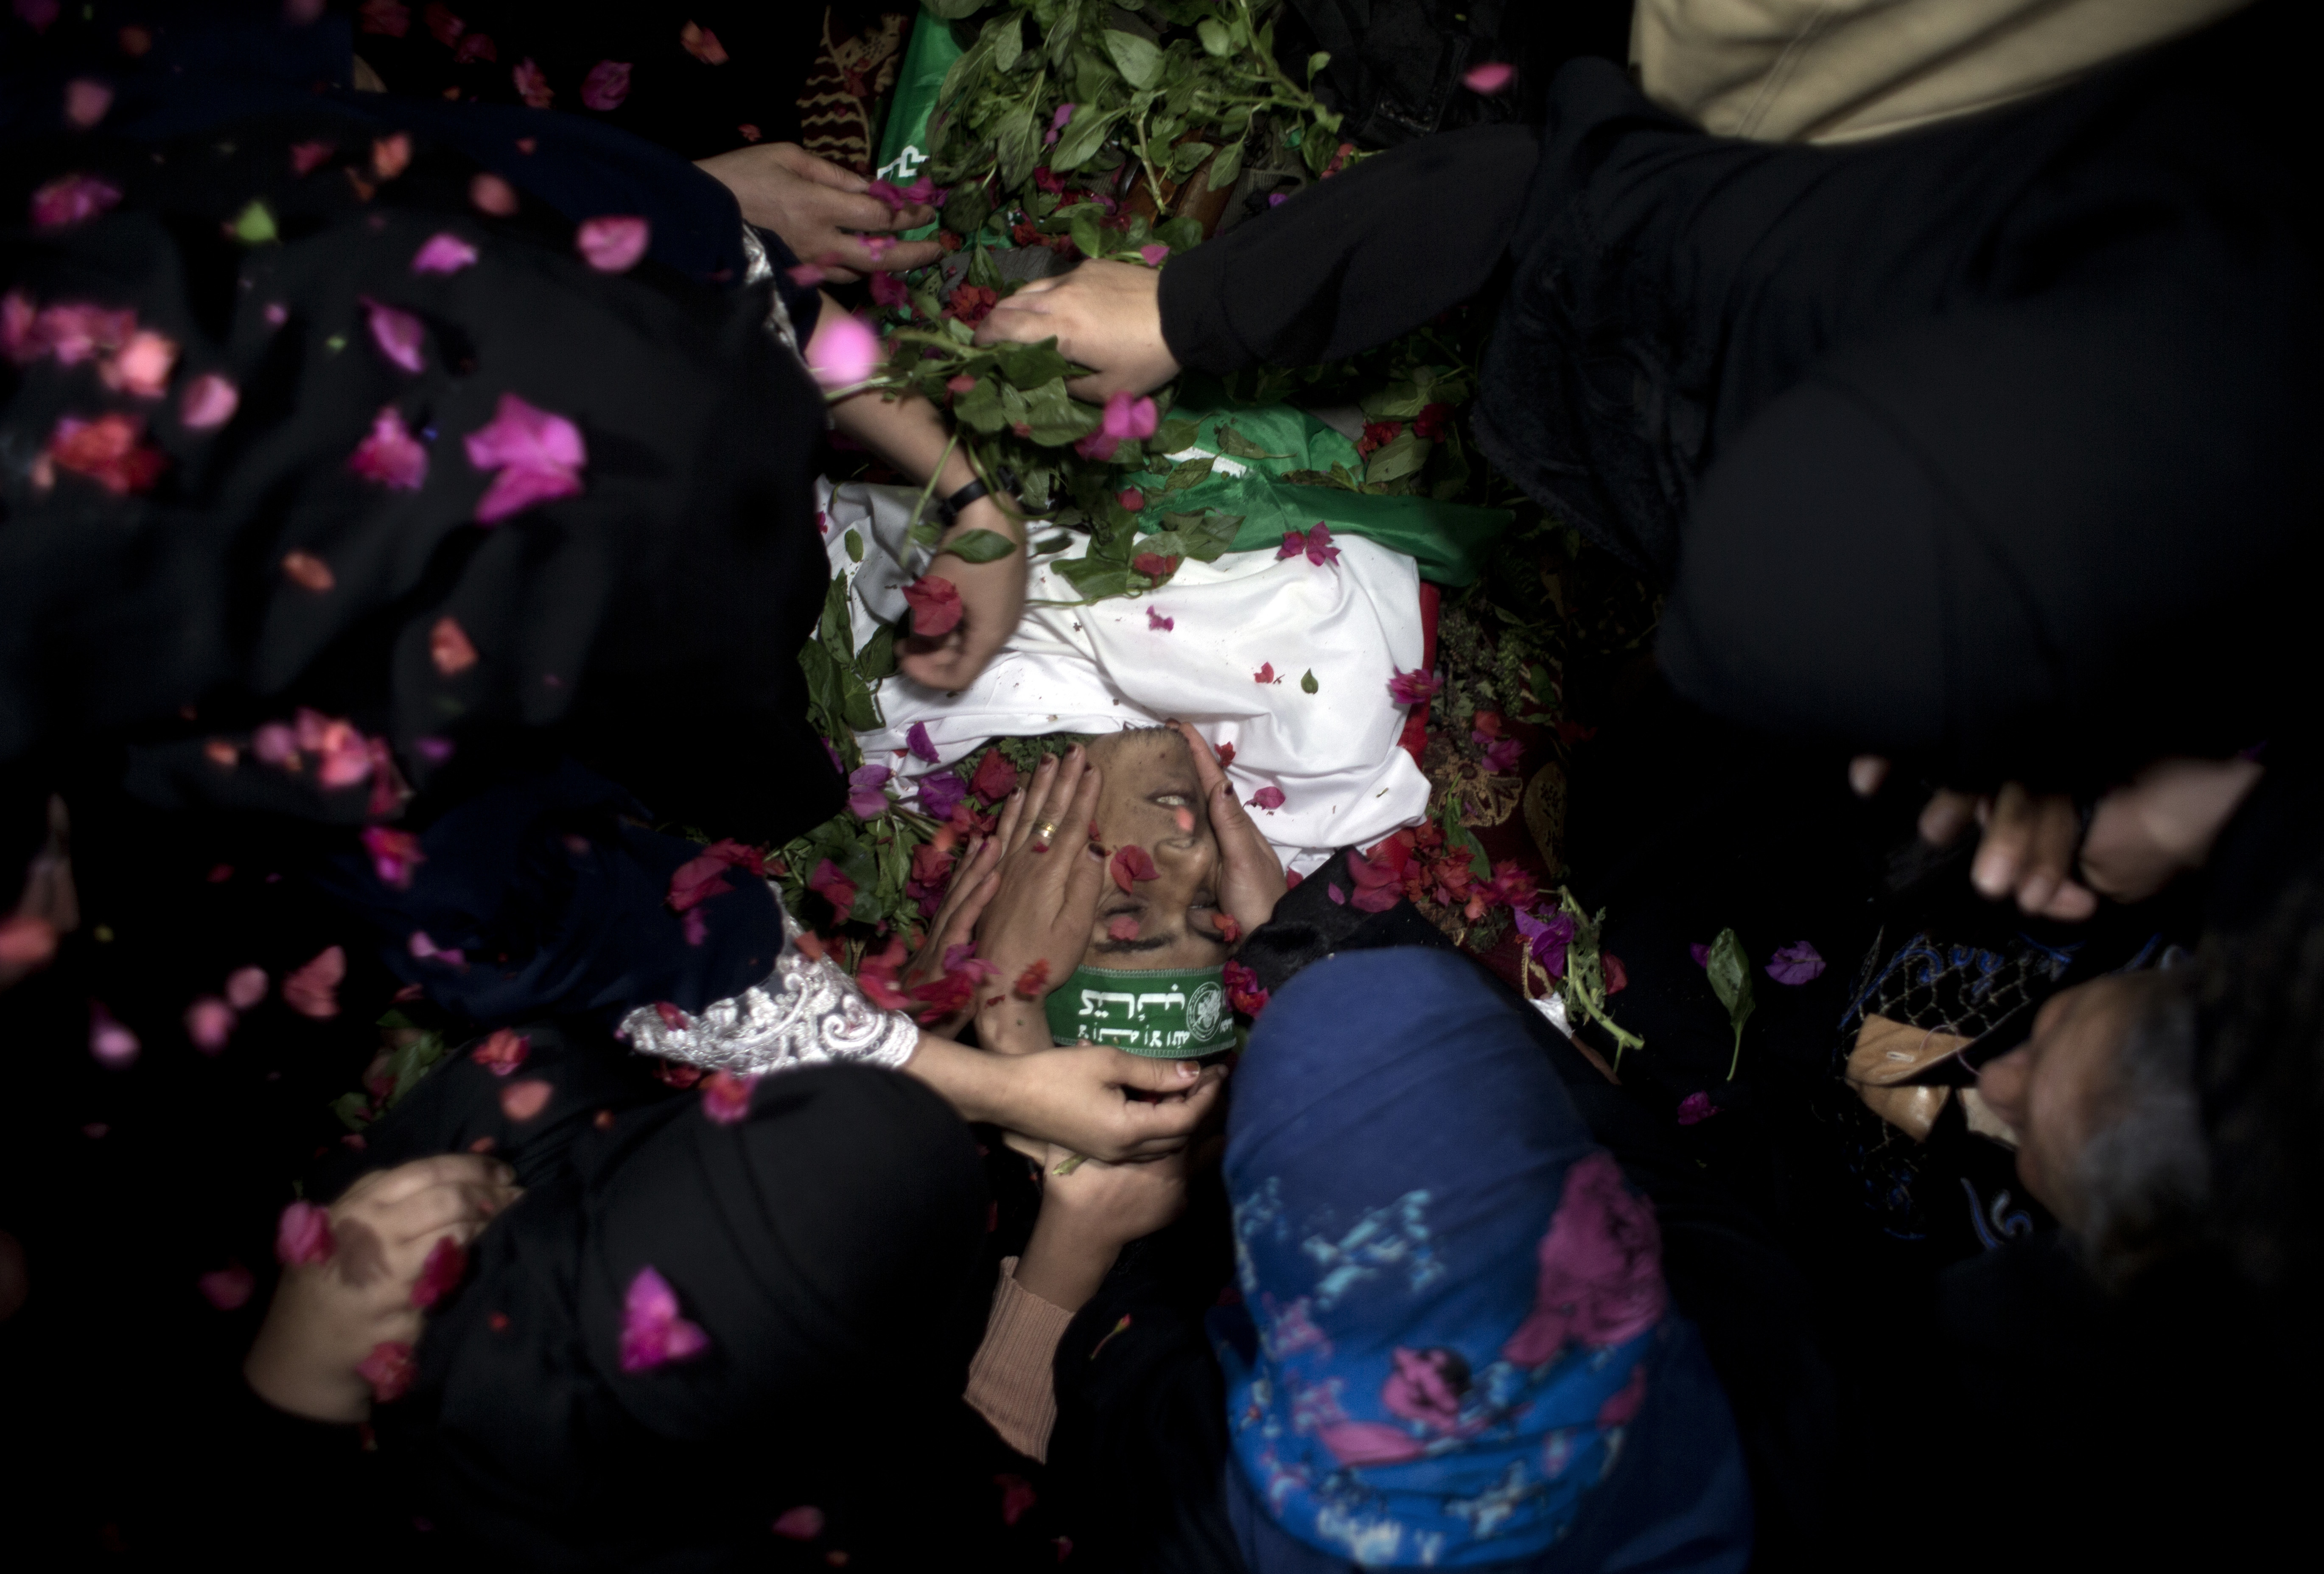 Relatives of Ahmed Abu Lebdeh, 22, who was killed by Israeli troops during Friday's protest at the Gaza Strip's border with Israel, mourn over his body into the family home during his funeral in town of Khan Younis, southern Gaza Strip, Saturday, Oct. 27, 2018. (AP Photo/Khalil Hamra)